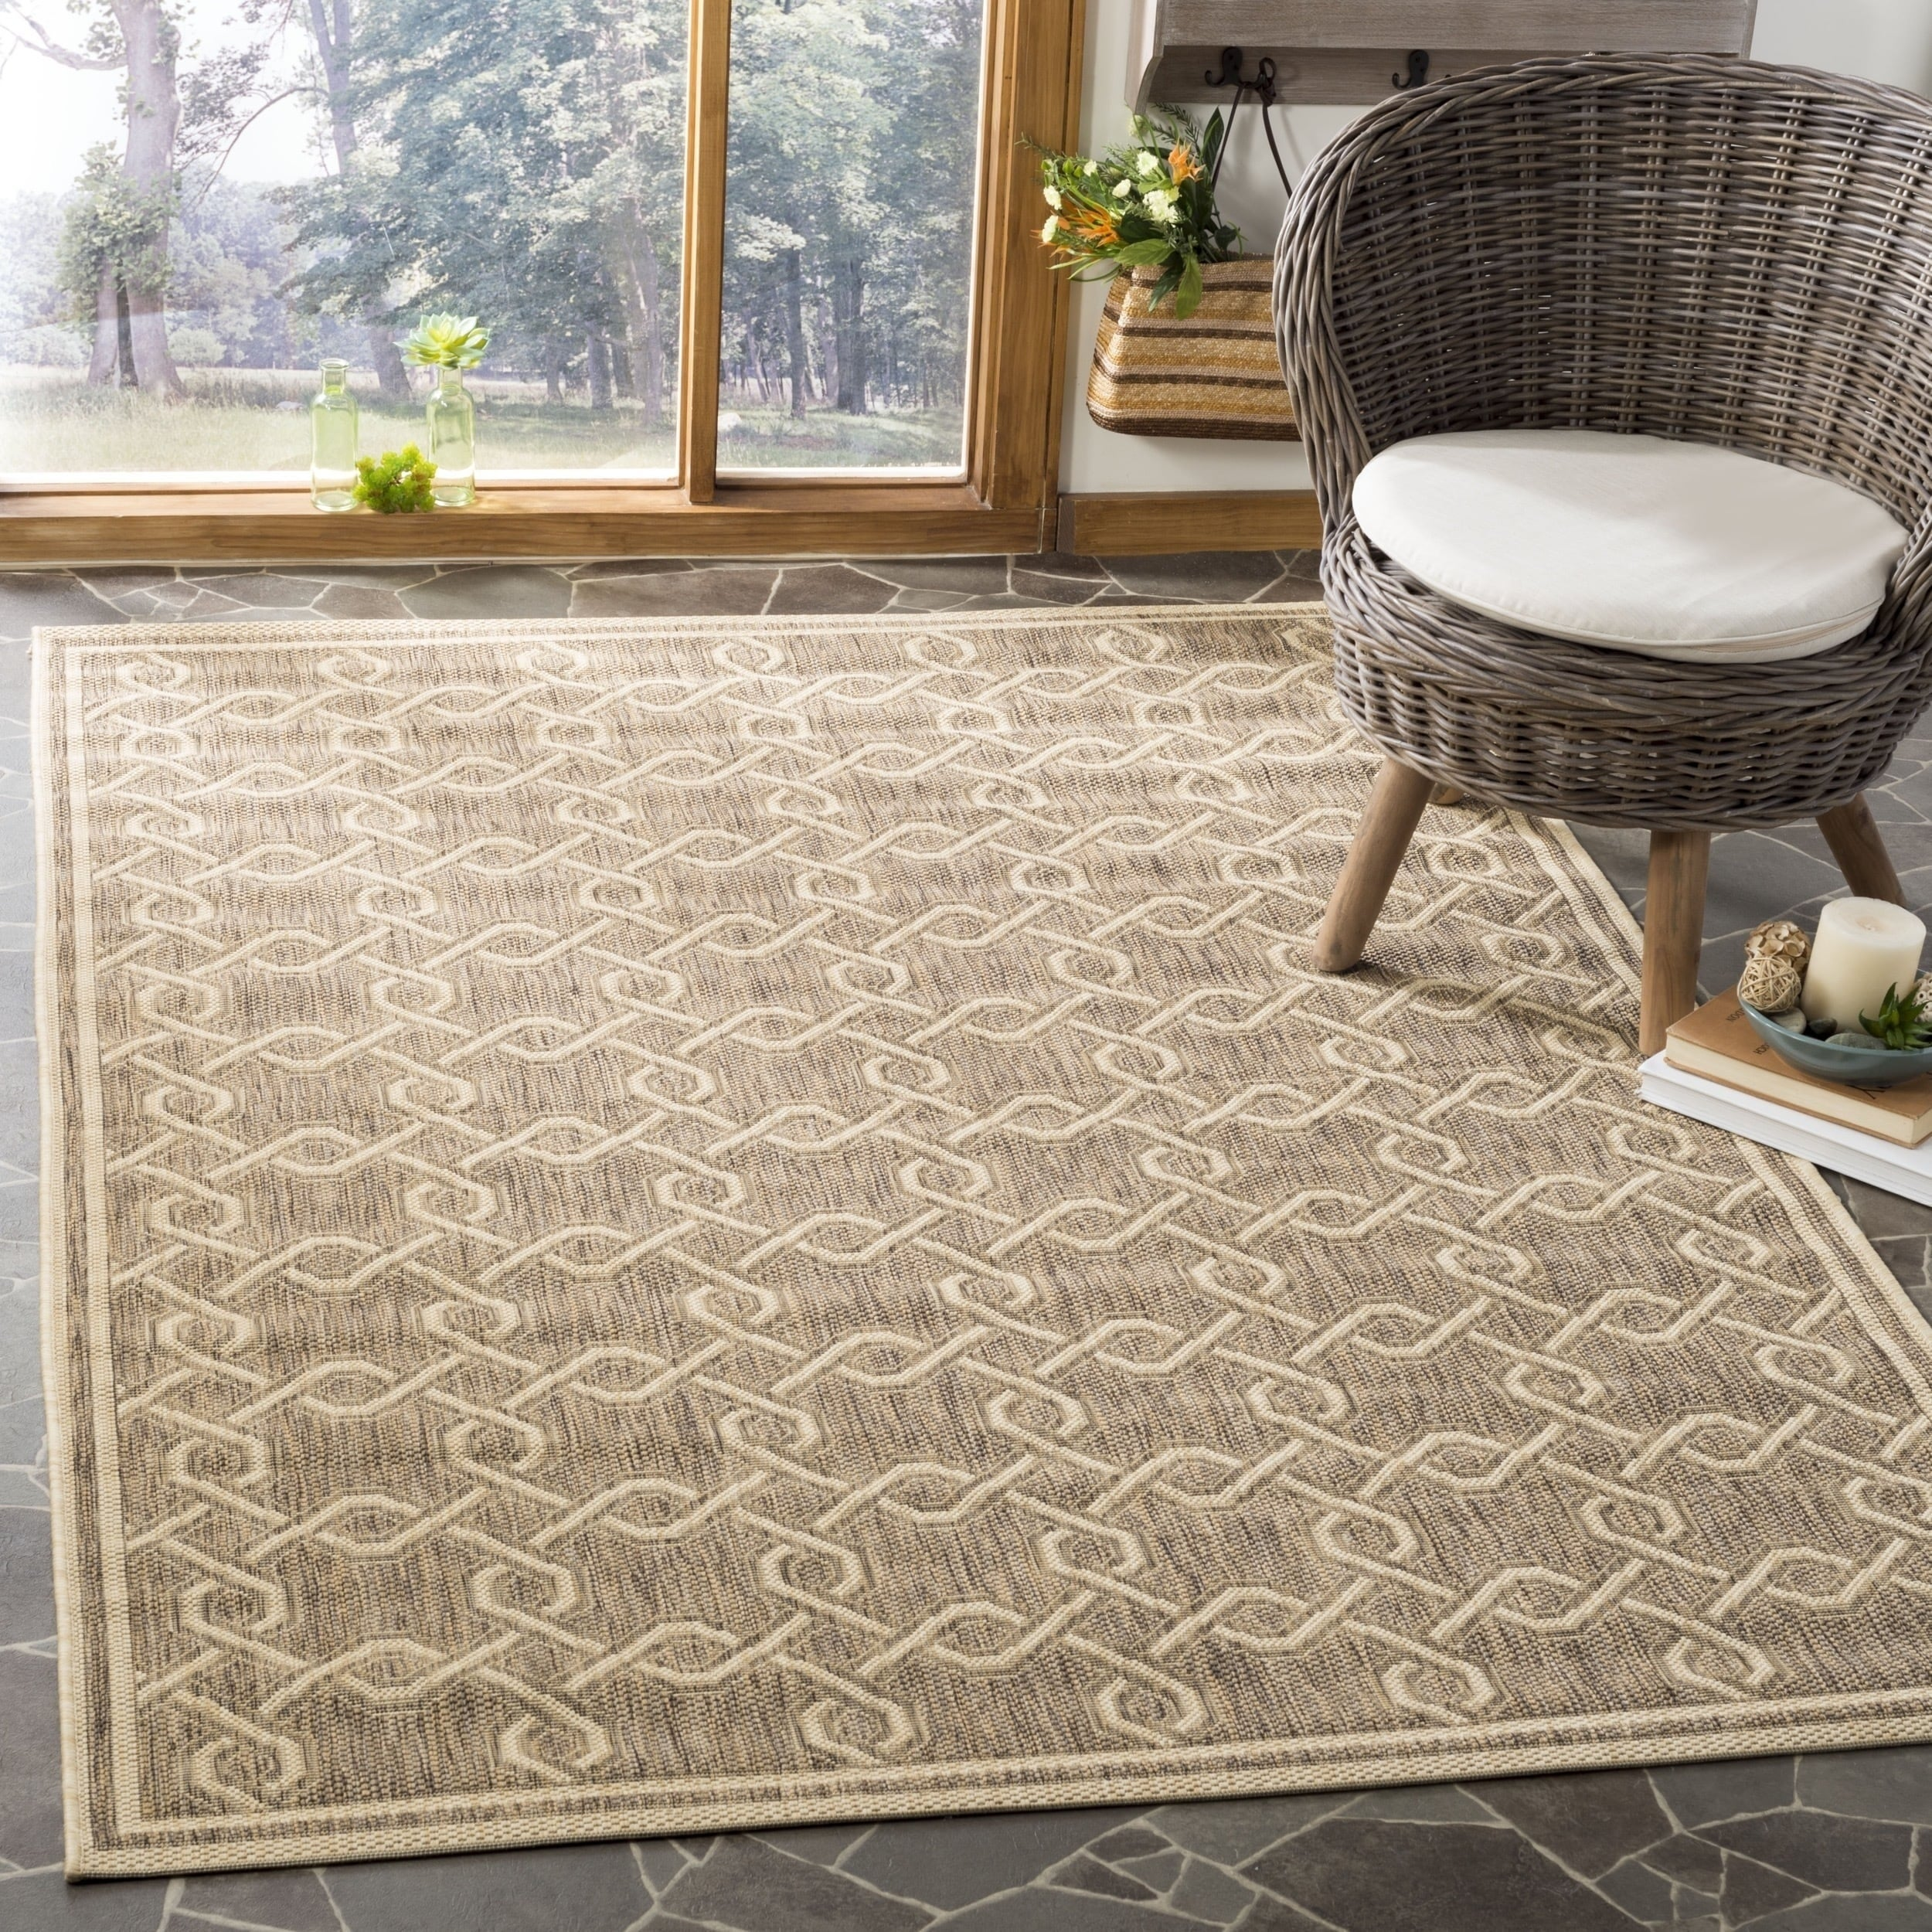 Vintage Elegance Is Integral To The Charm Of Reflection Collection Area Rugs From Safavieh Neutral Hues Make Decorating A Breeze And